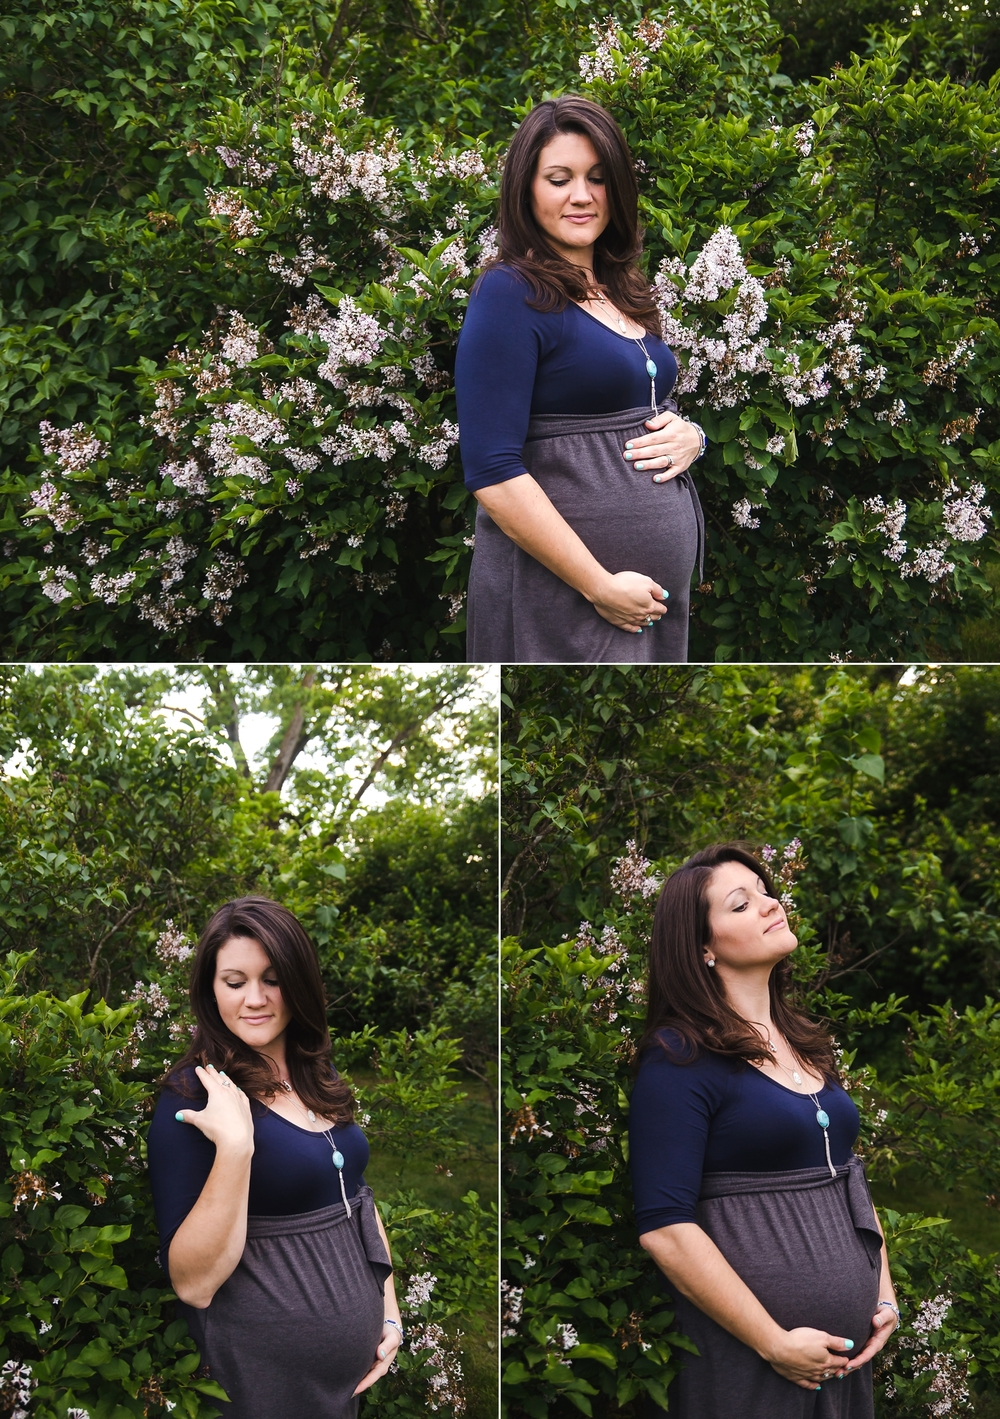 Mommy-to-be poses for pictures in front of a lilac bush in Indianapolis, IN.